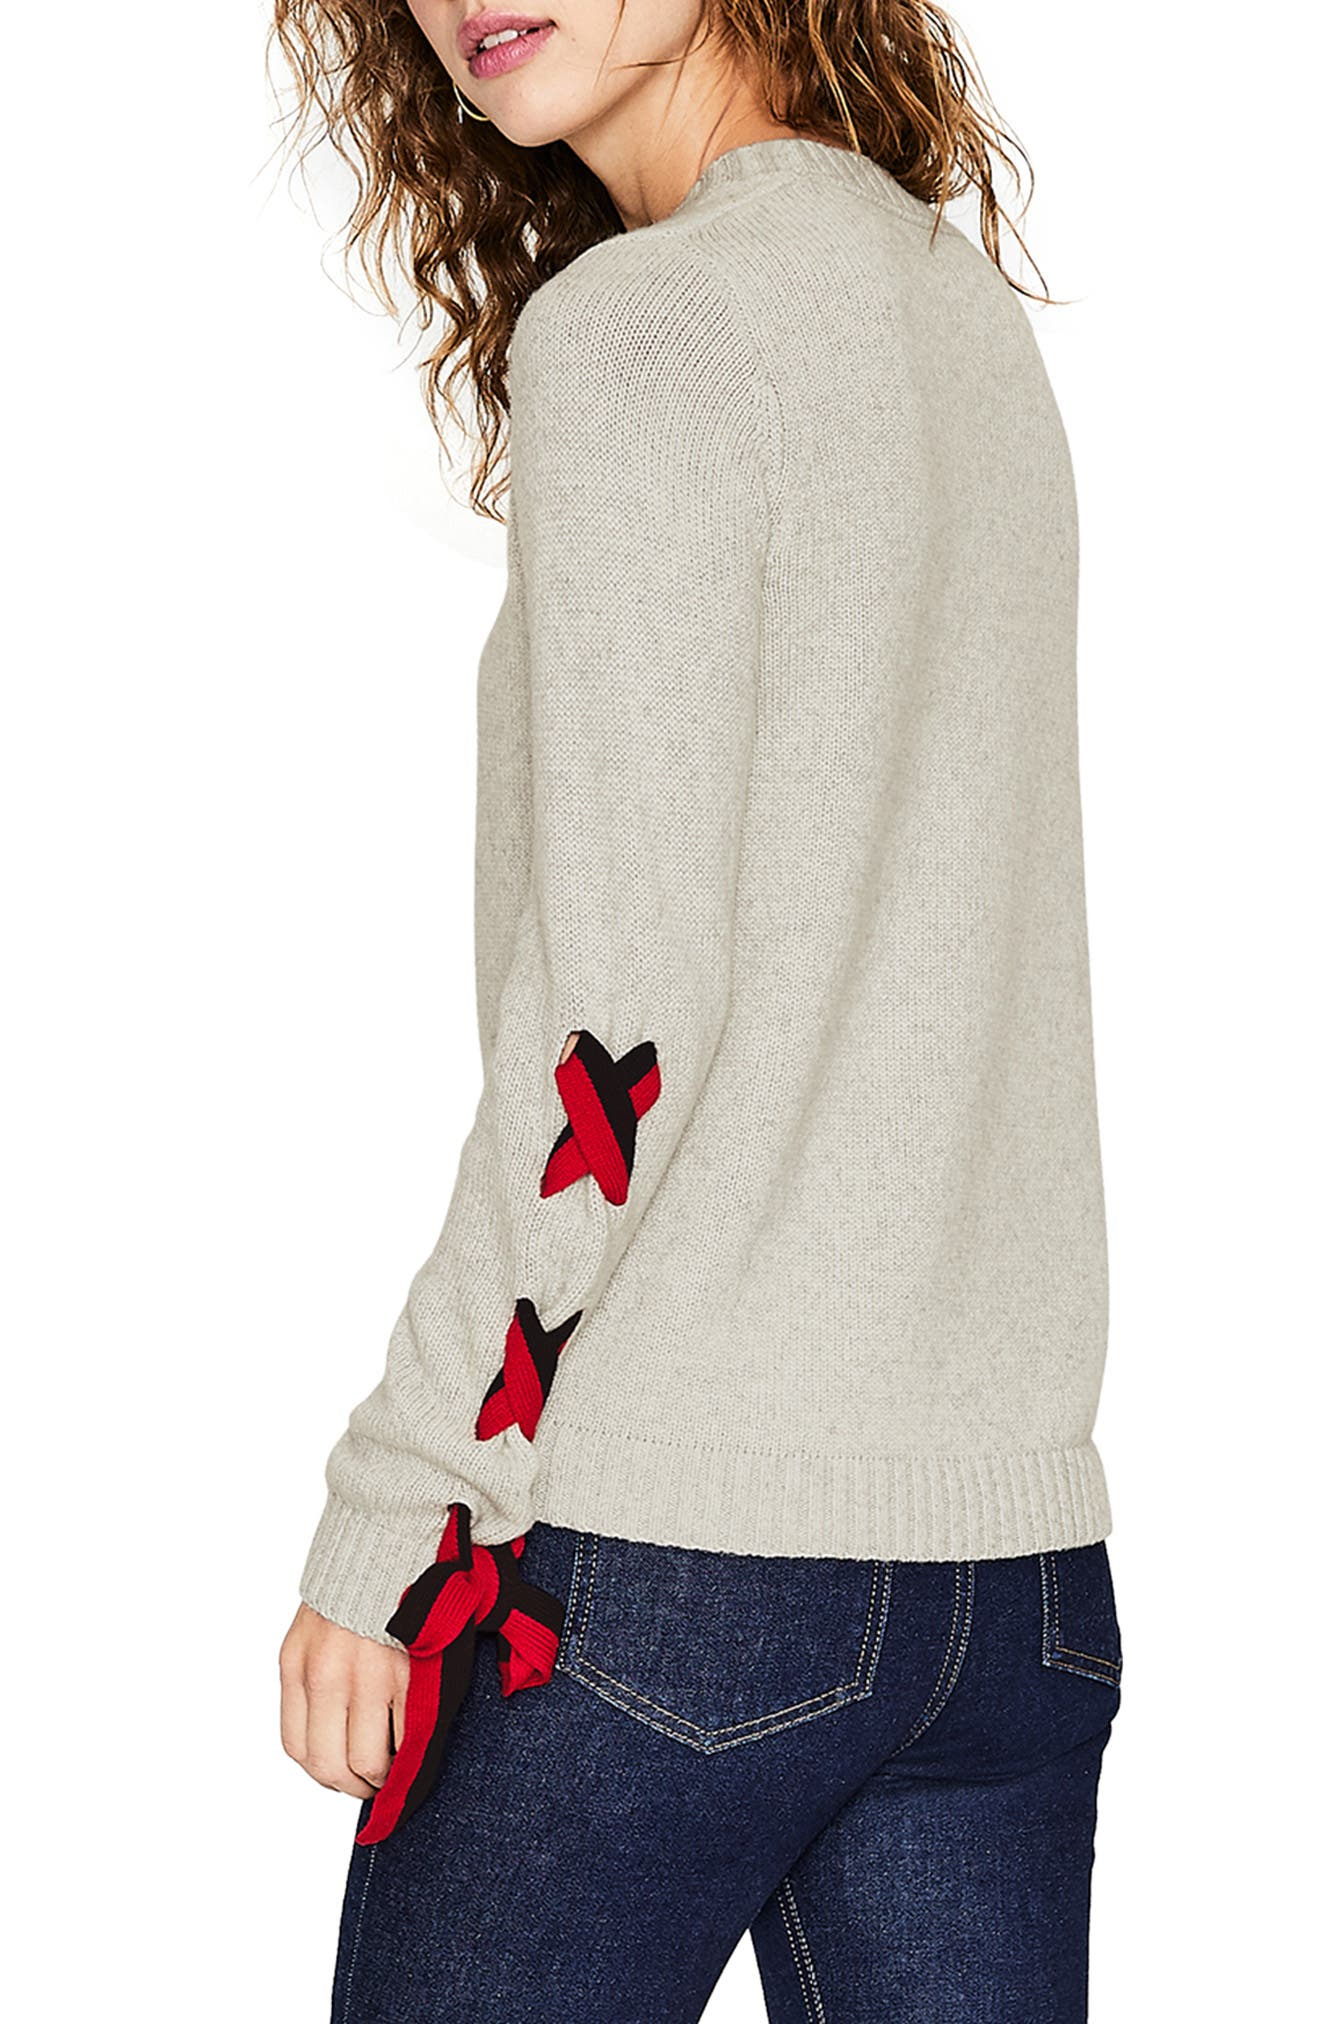 BODEN,                             Angelica Sweater,                             Alternate thumbnail 2, color,                             042